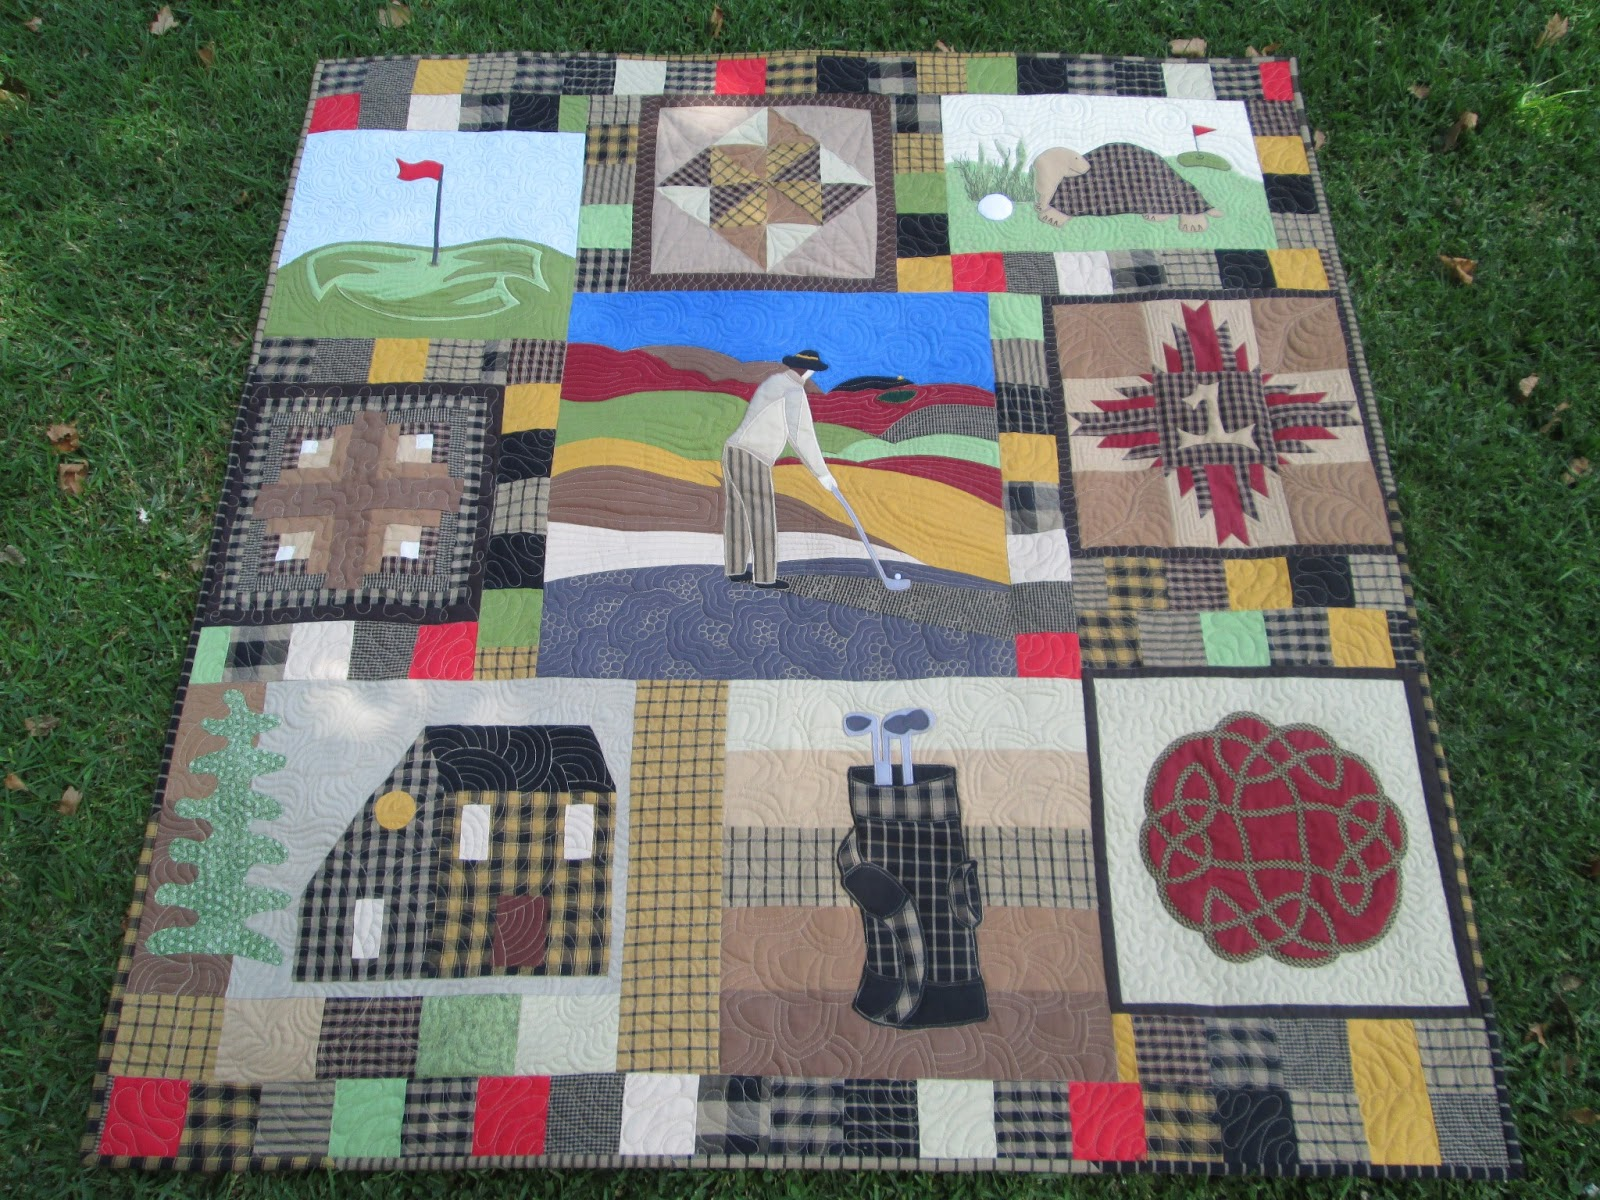 Stitch by Stitch: Gone golfing... back maybe! : golf quilt patterns - Adamdwight.com